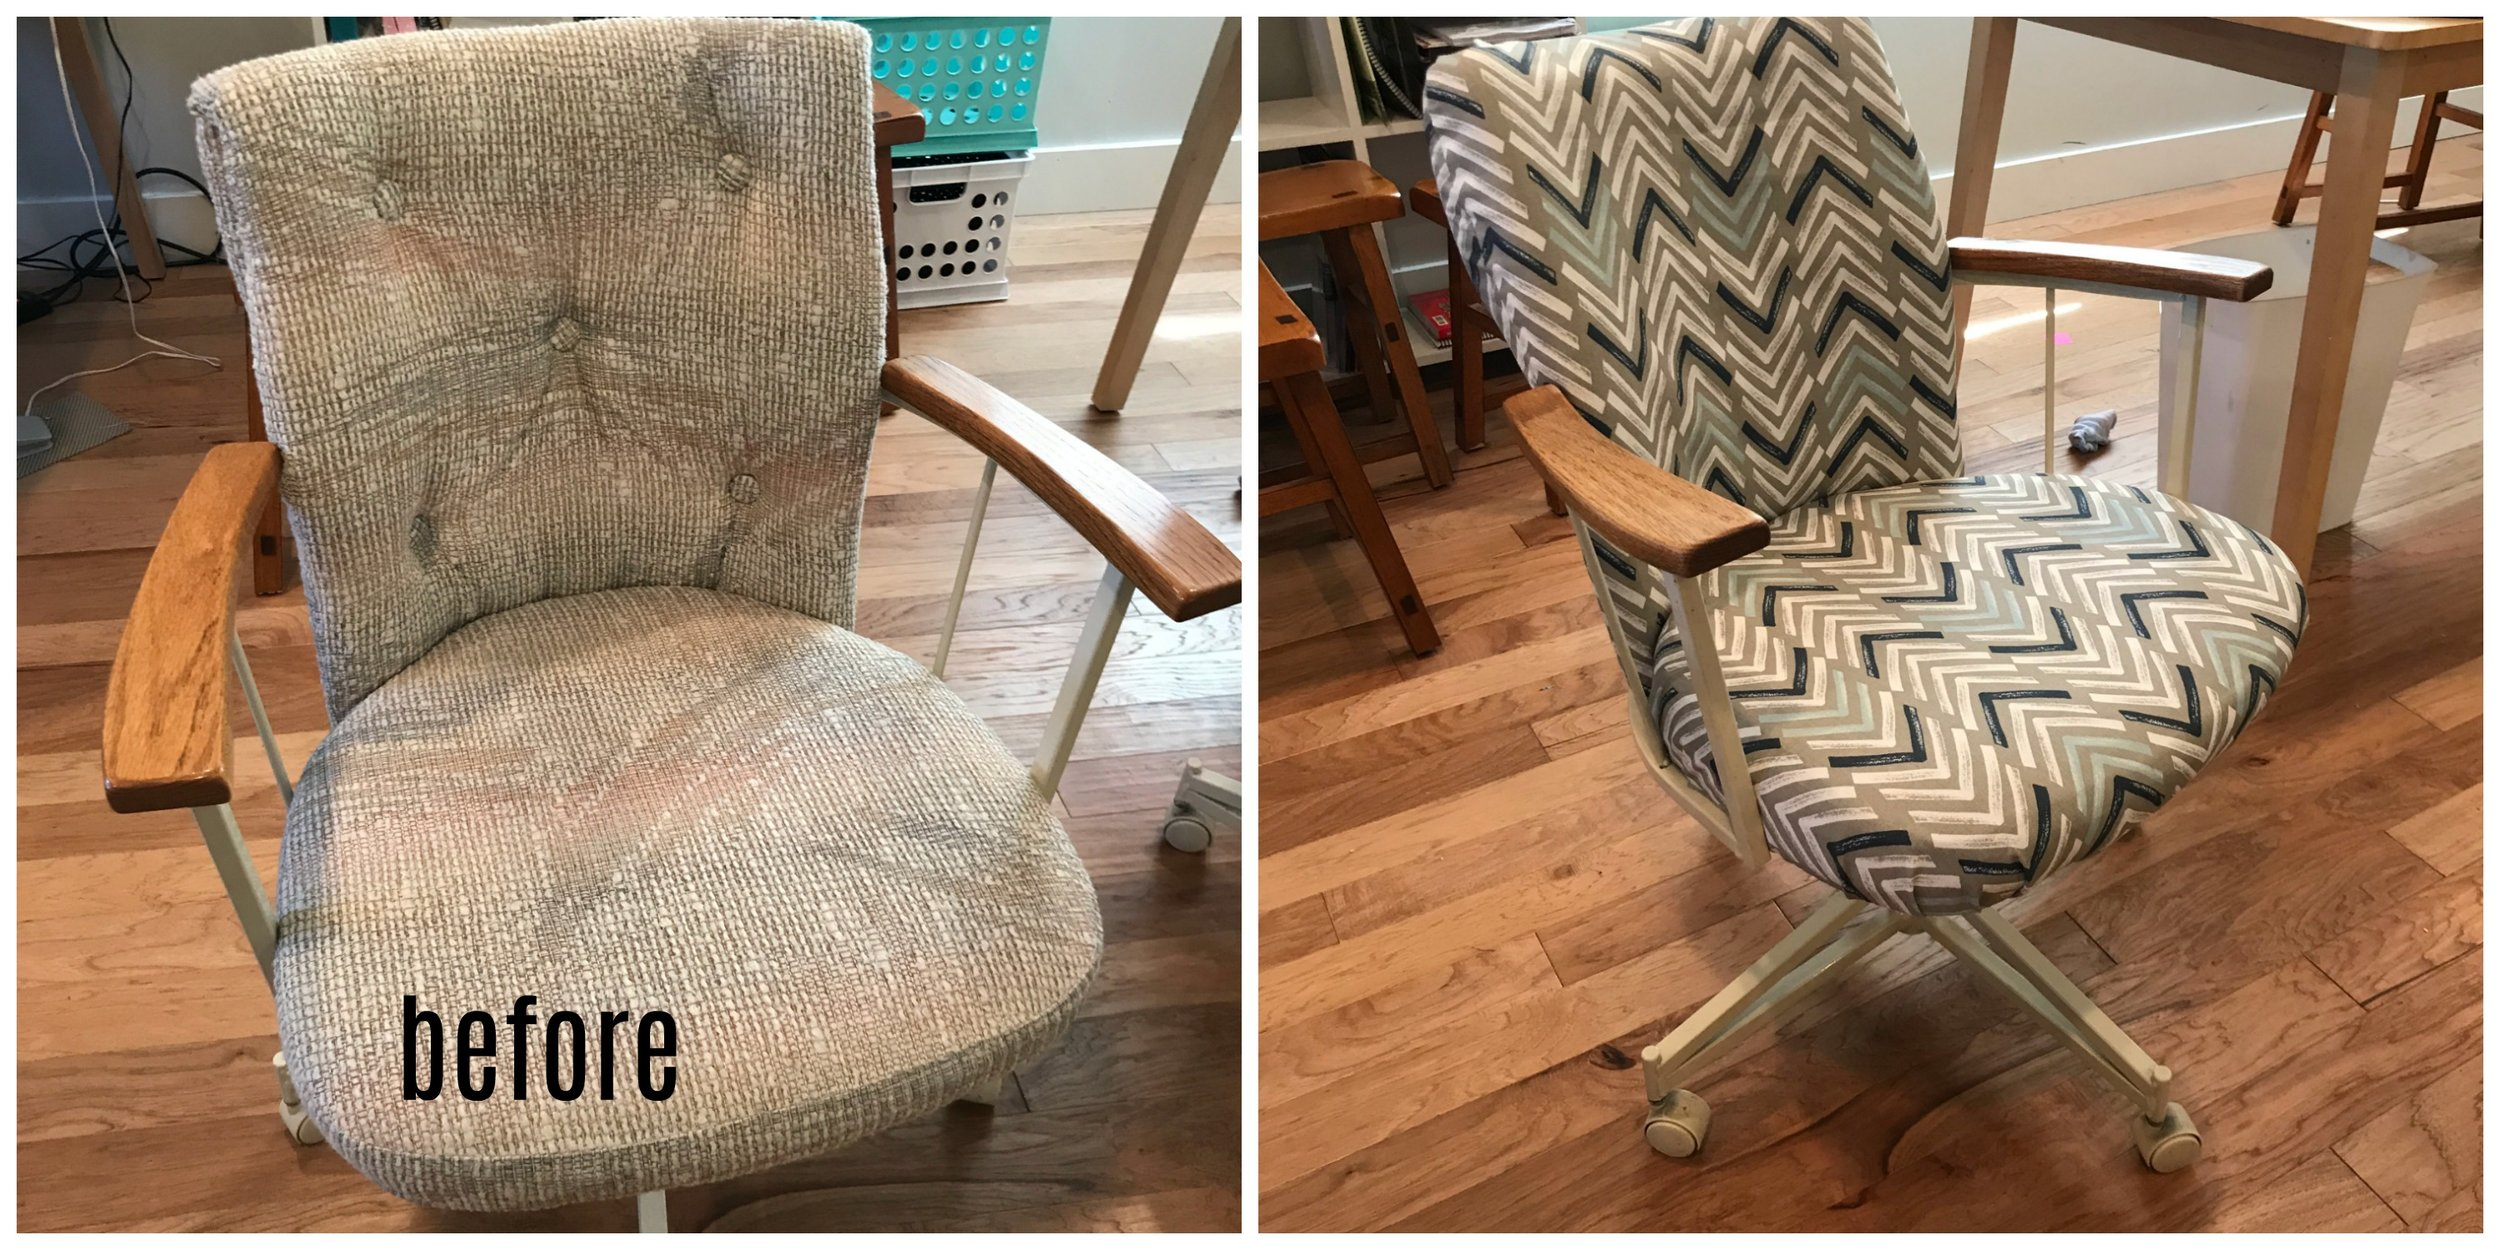 80's chair makeover